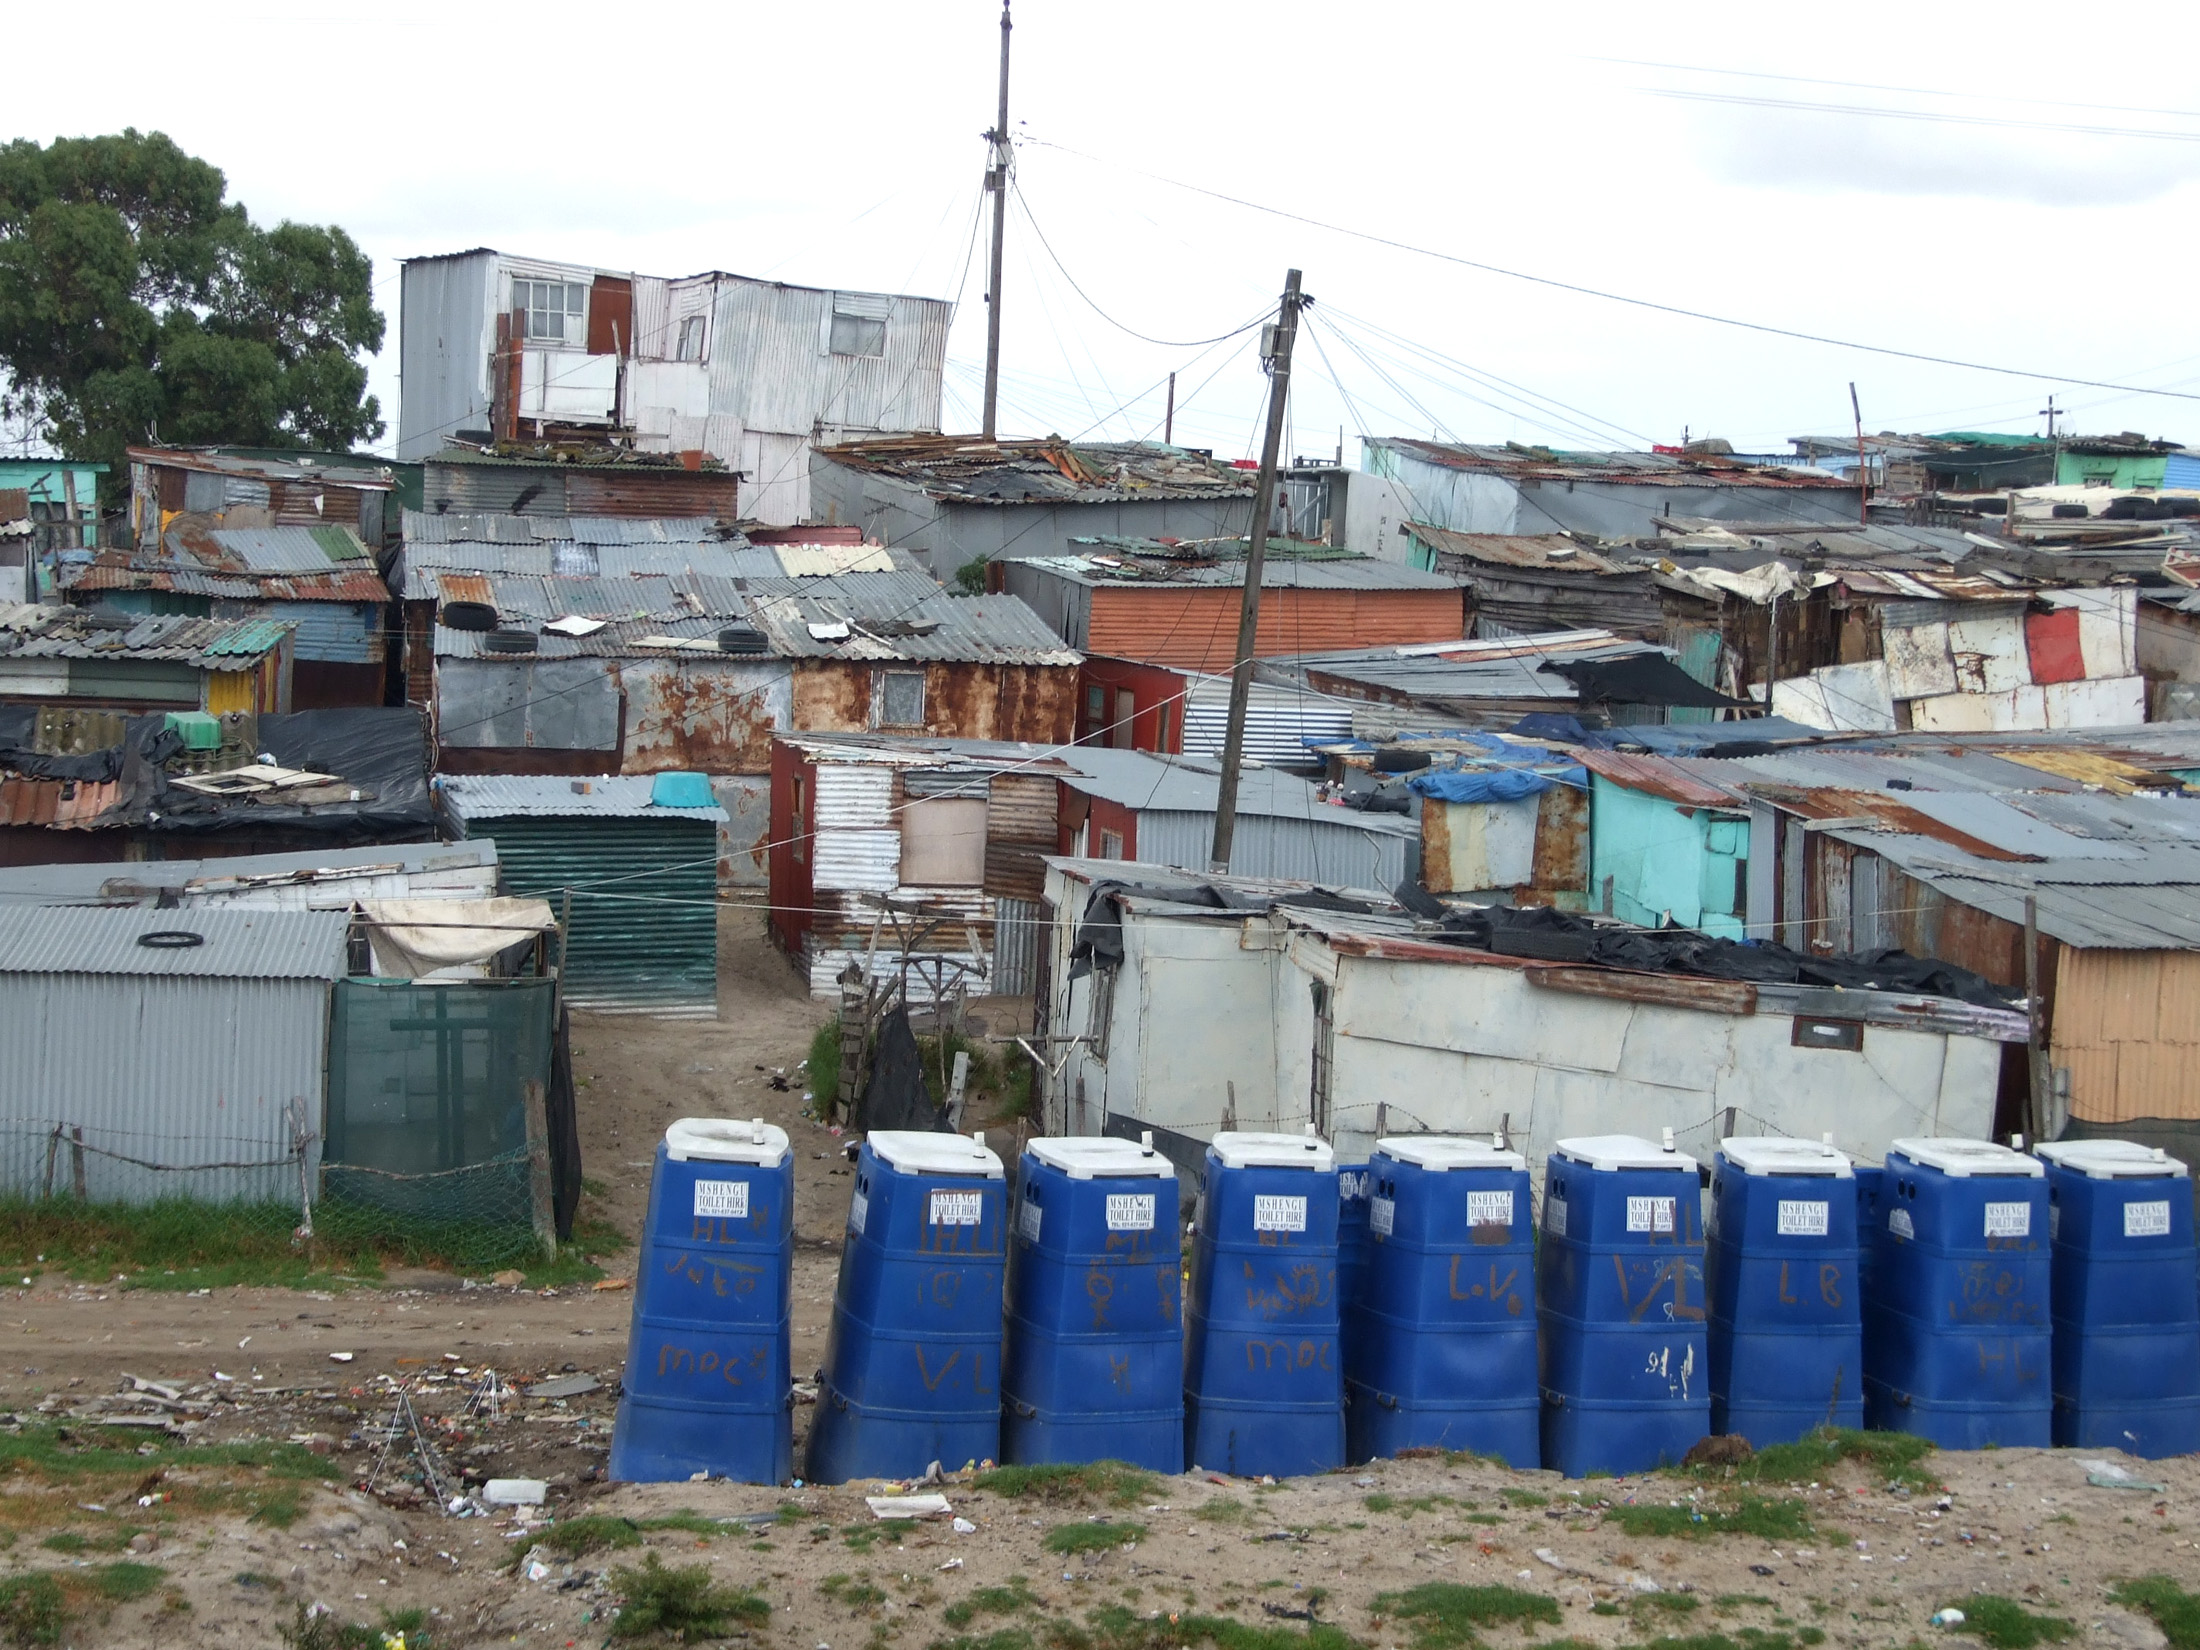 An informal settlement in the Cape Town township of Khayelitsha